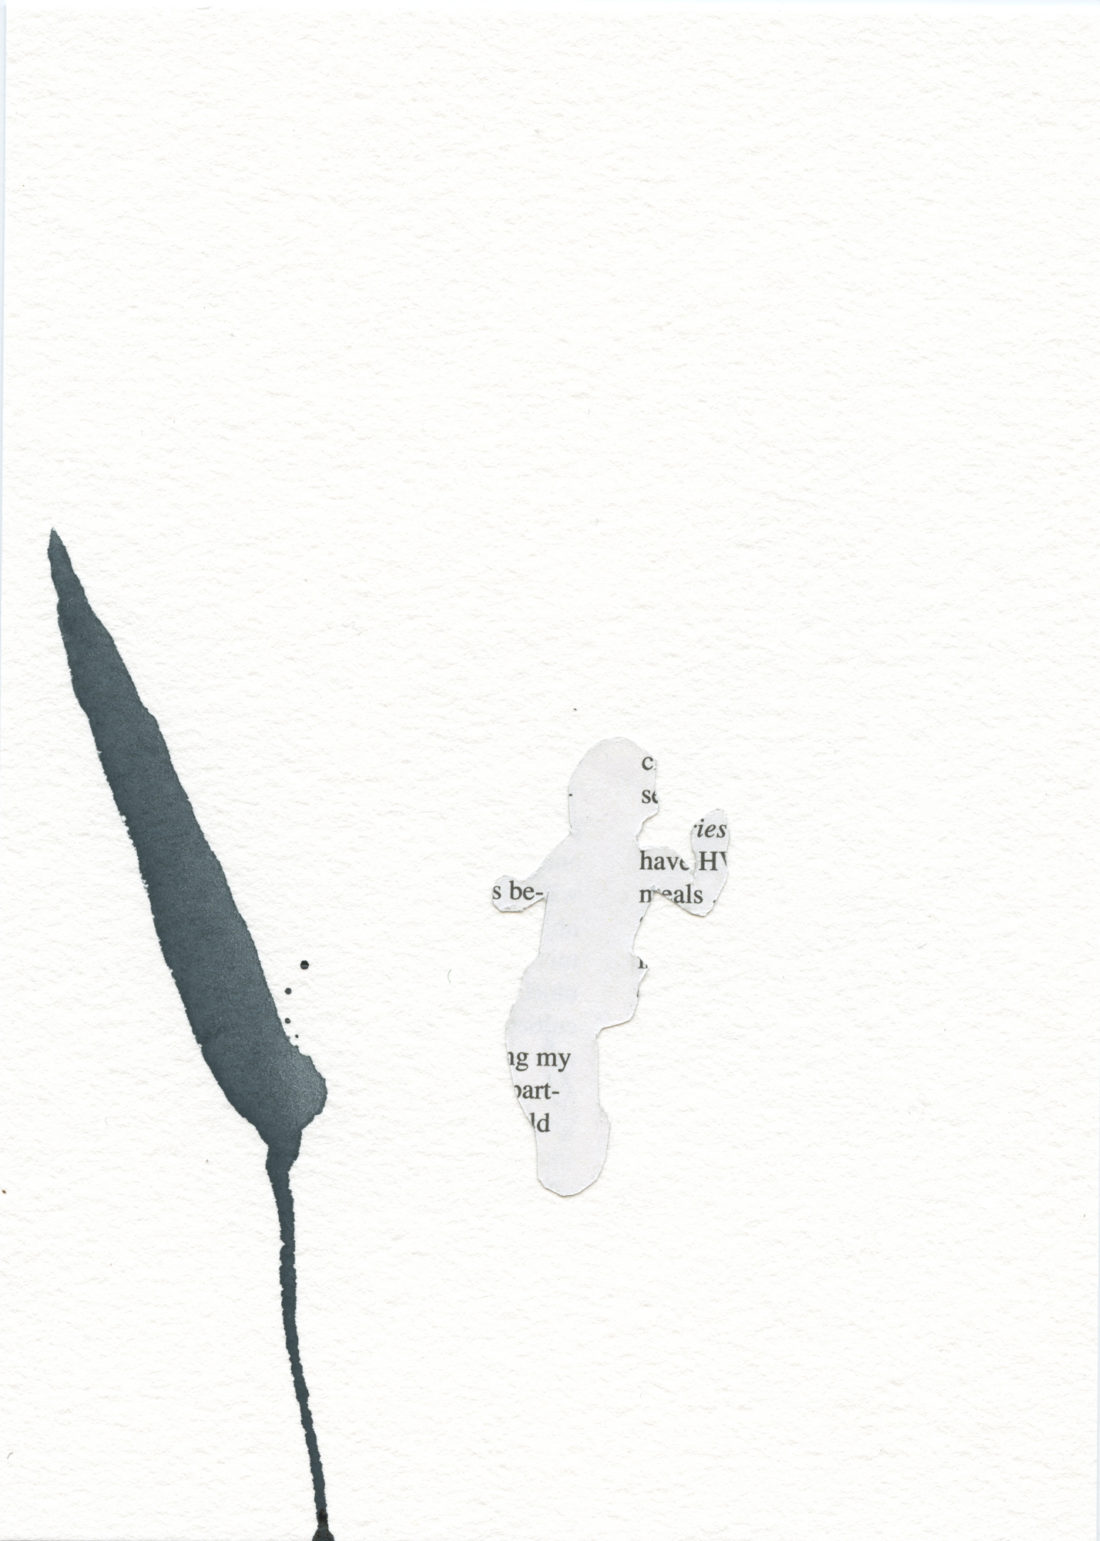 There are more than 5 stages of Grief (detail), a project by Nicole Rademacher